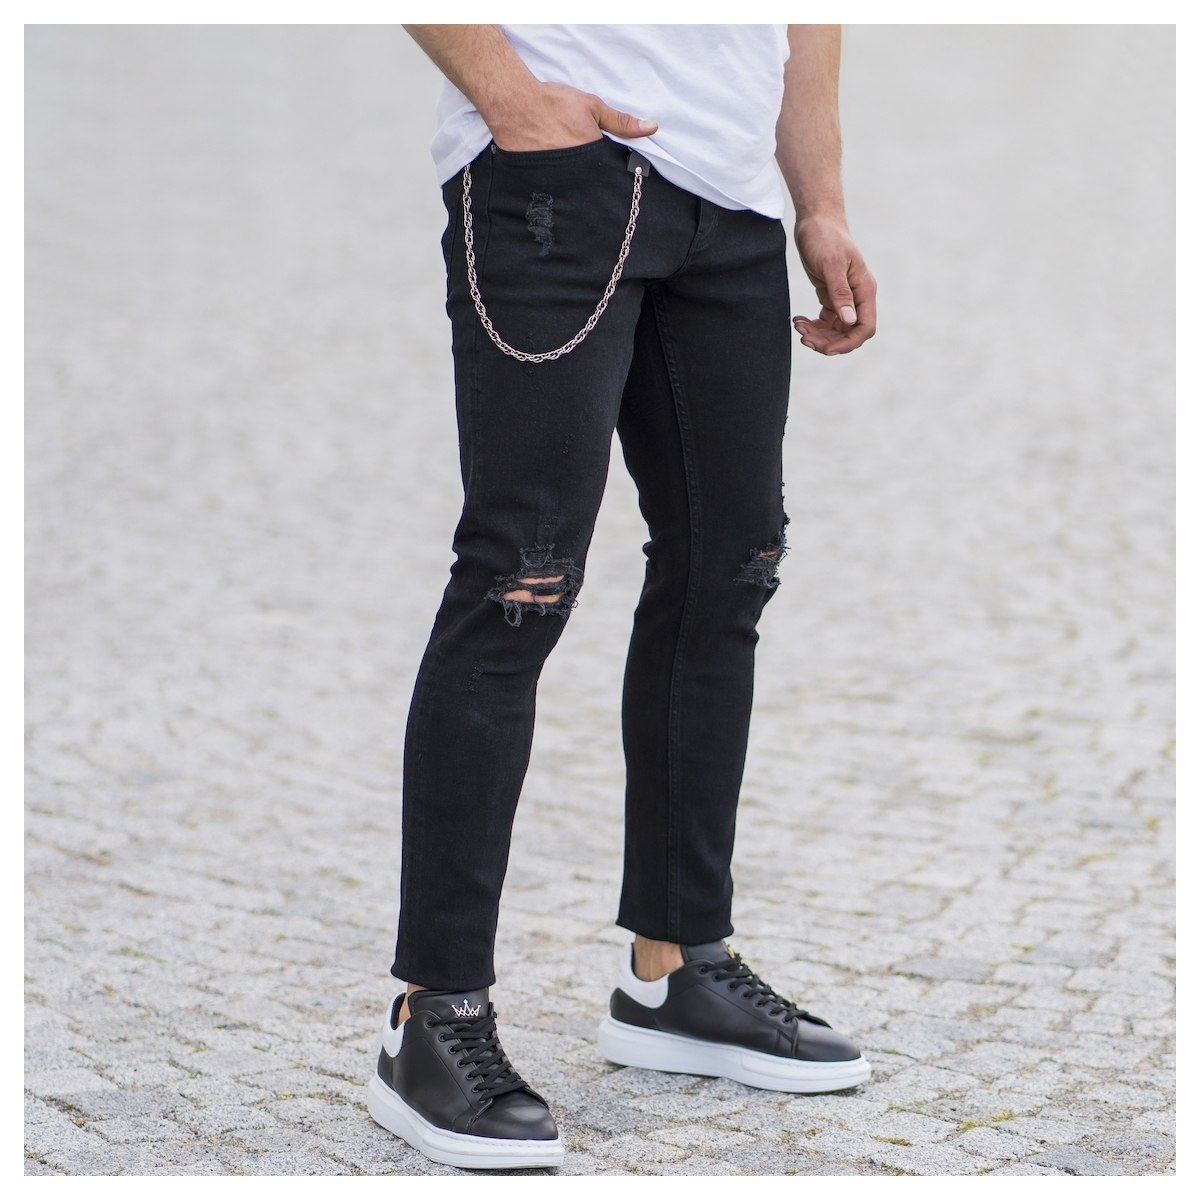 Men's Ragged Jeans With...